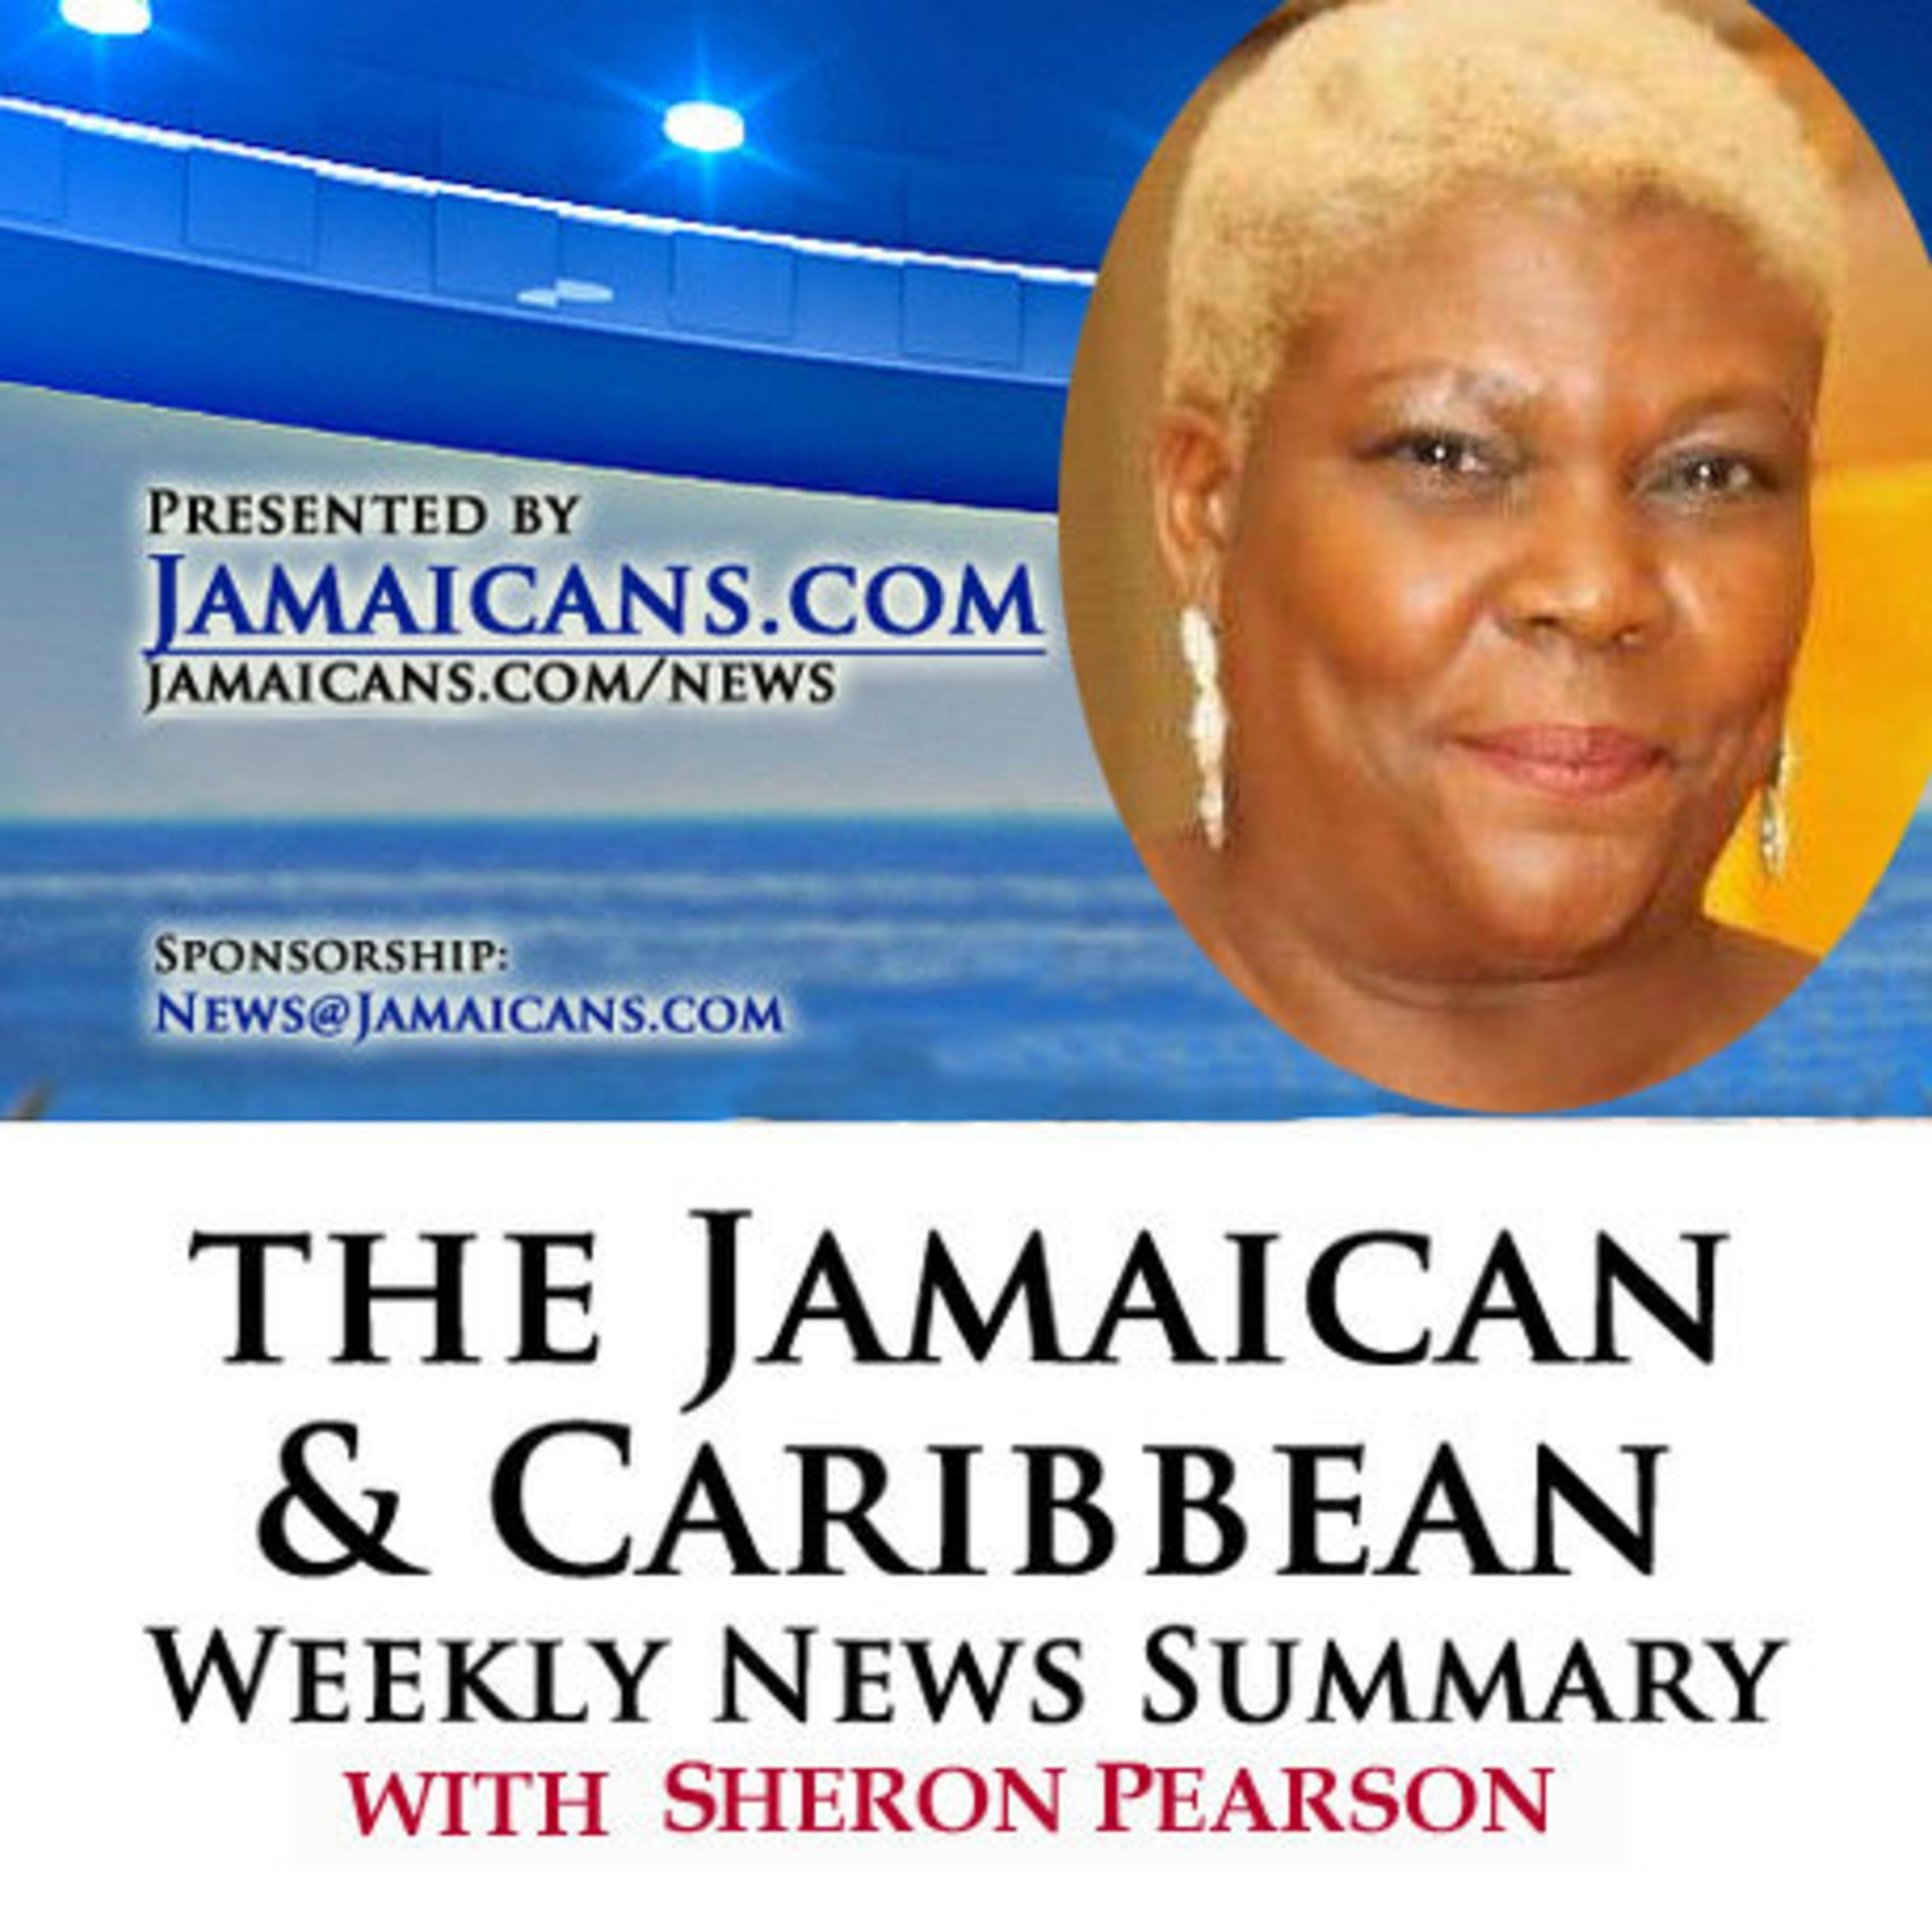 Listen to the Podcast of The Jamaica & Caribbean Weekly News Summary for the week ending May 8, 2020